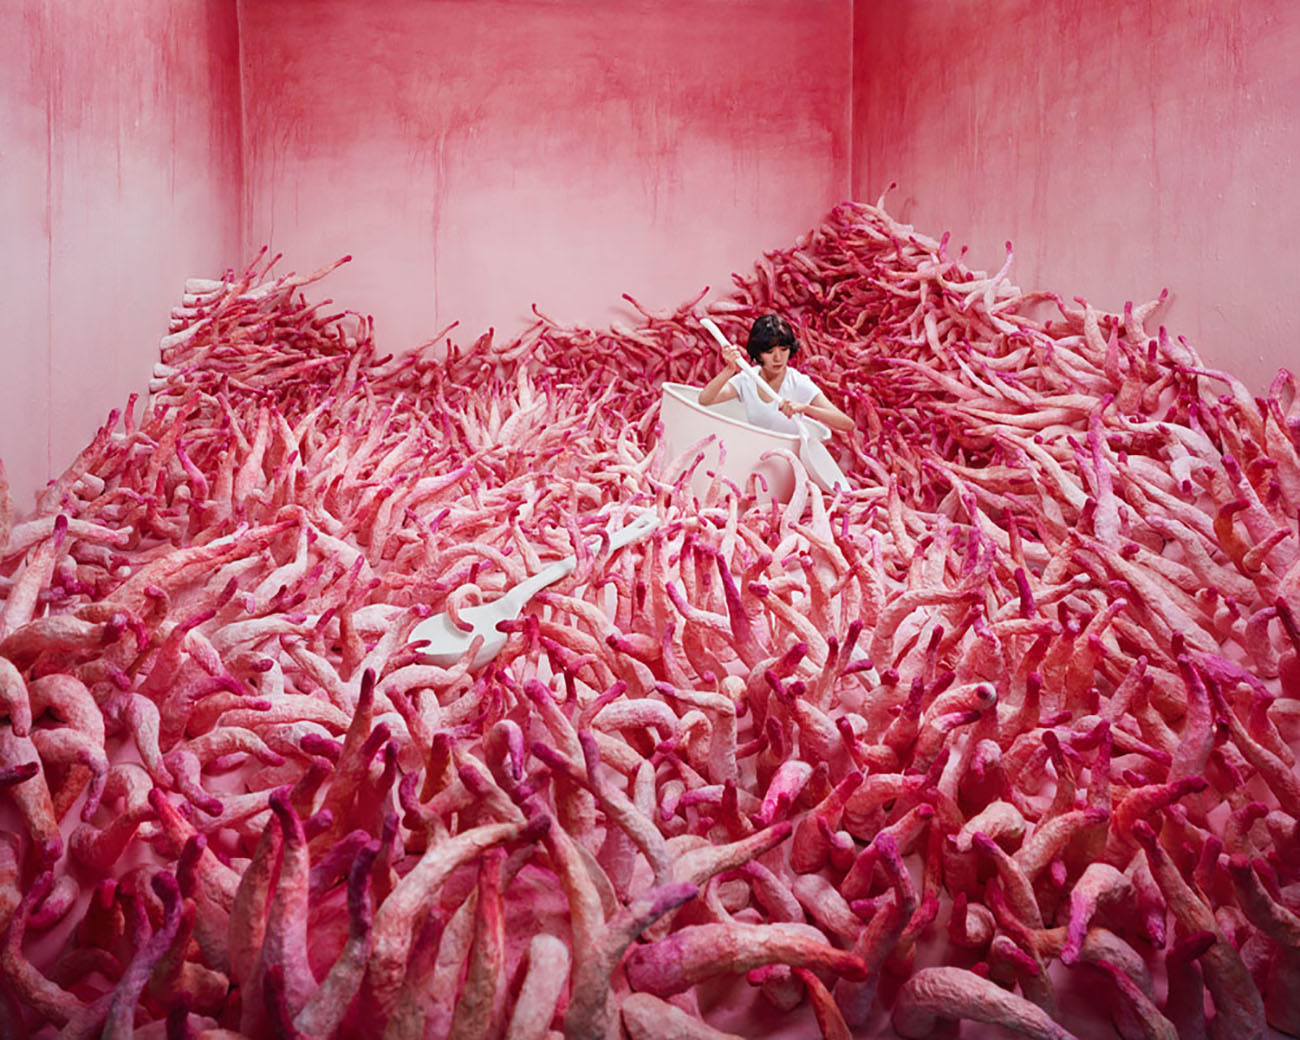 Korean Dreamscapes cameralabs